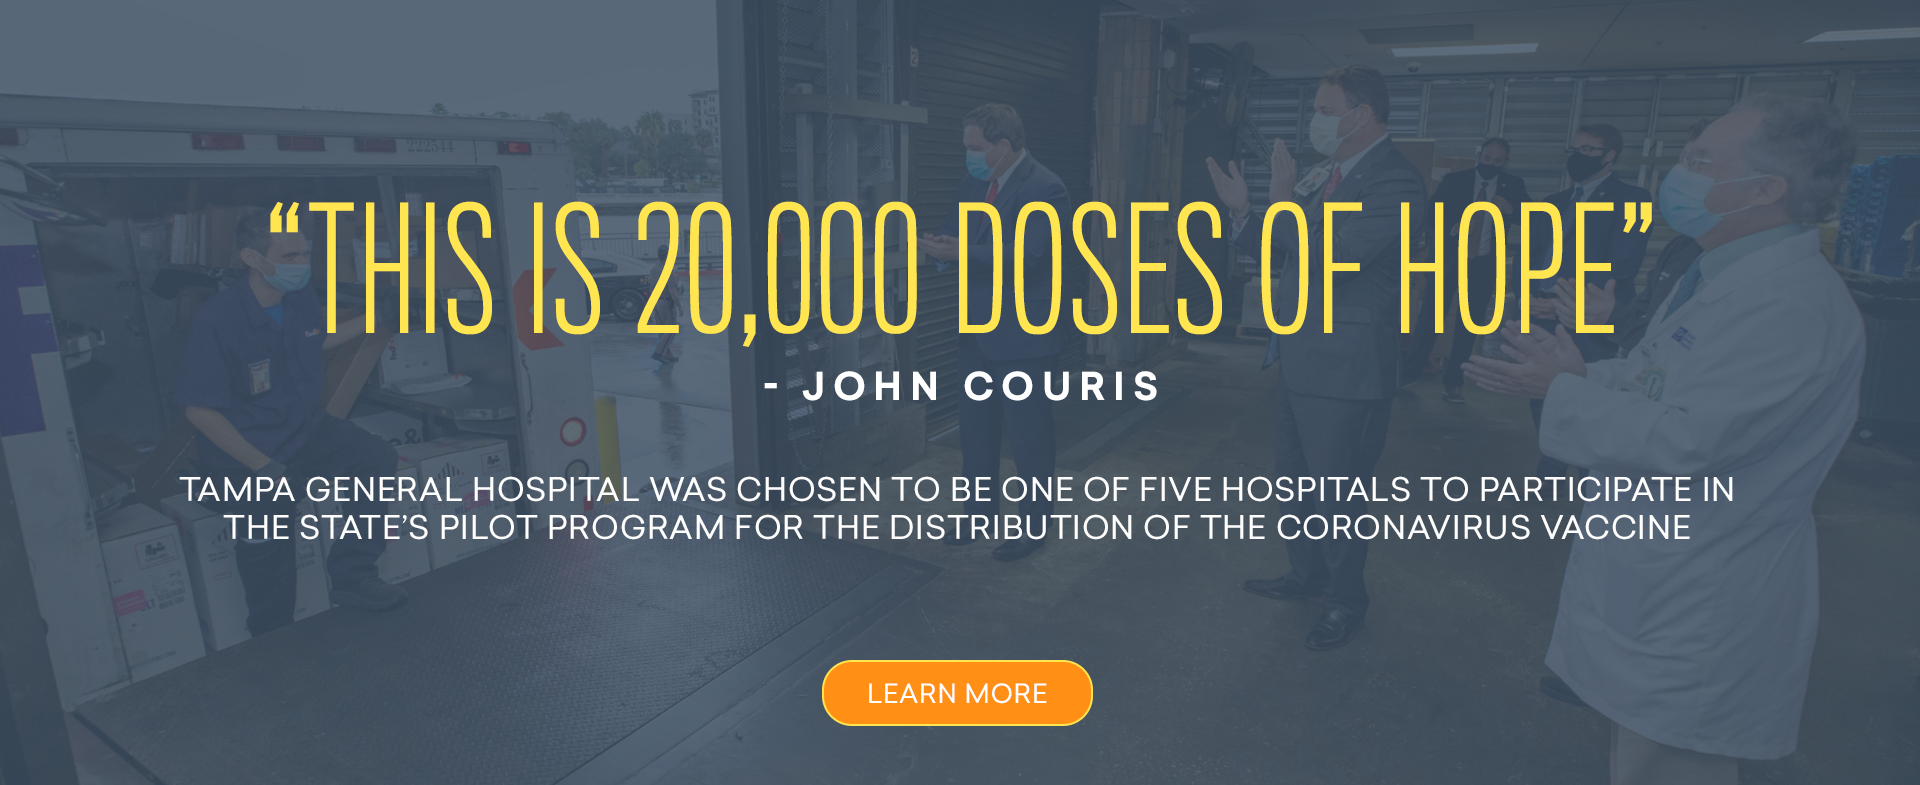 This is 20,000 doses of hope. John Couris. Tampa General Hospital was chosen to be one of five hospitals to participate in the state's pilot program for the distribution of the Coronavirus vaccine